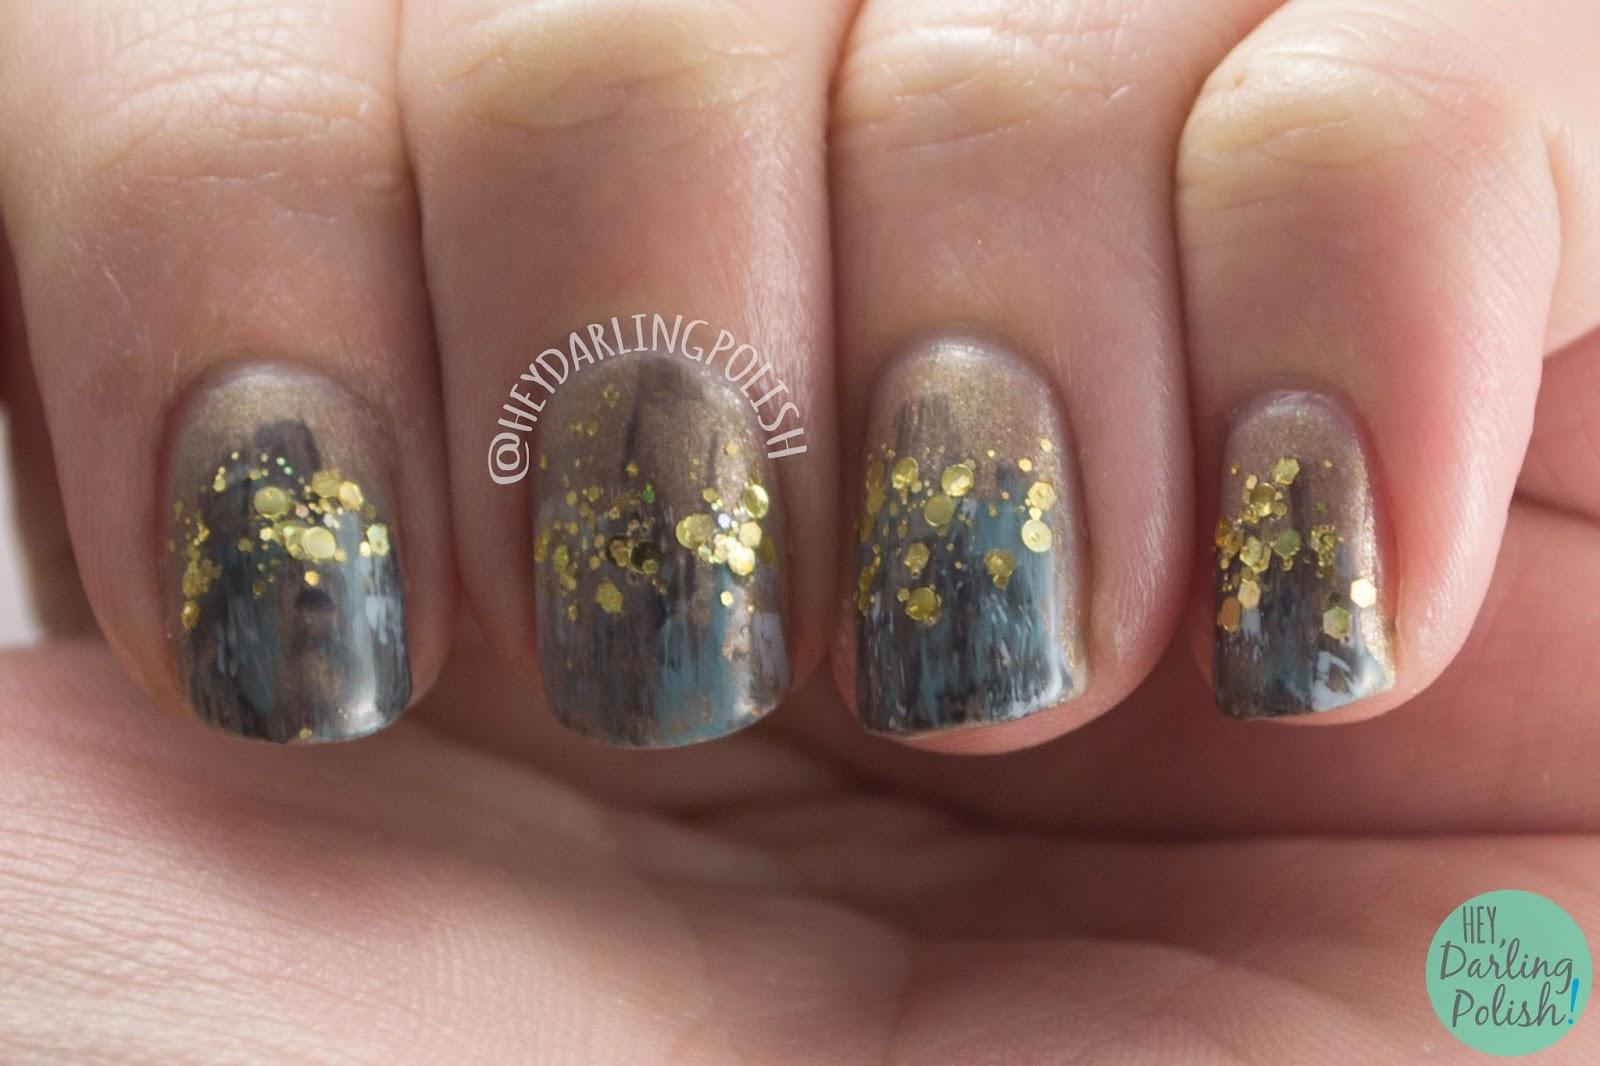 nails, nail art, nail polish, art, glitter, dry brush, hey darling polish, 2015 cnt 31 day challenge